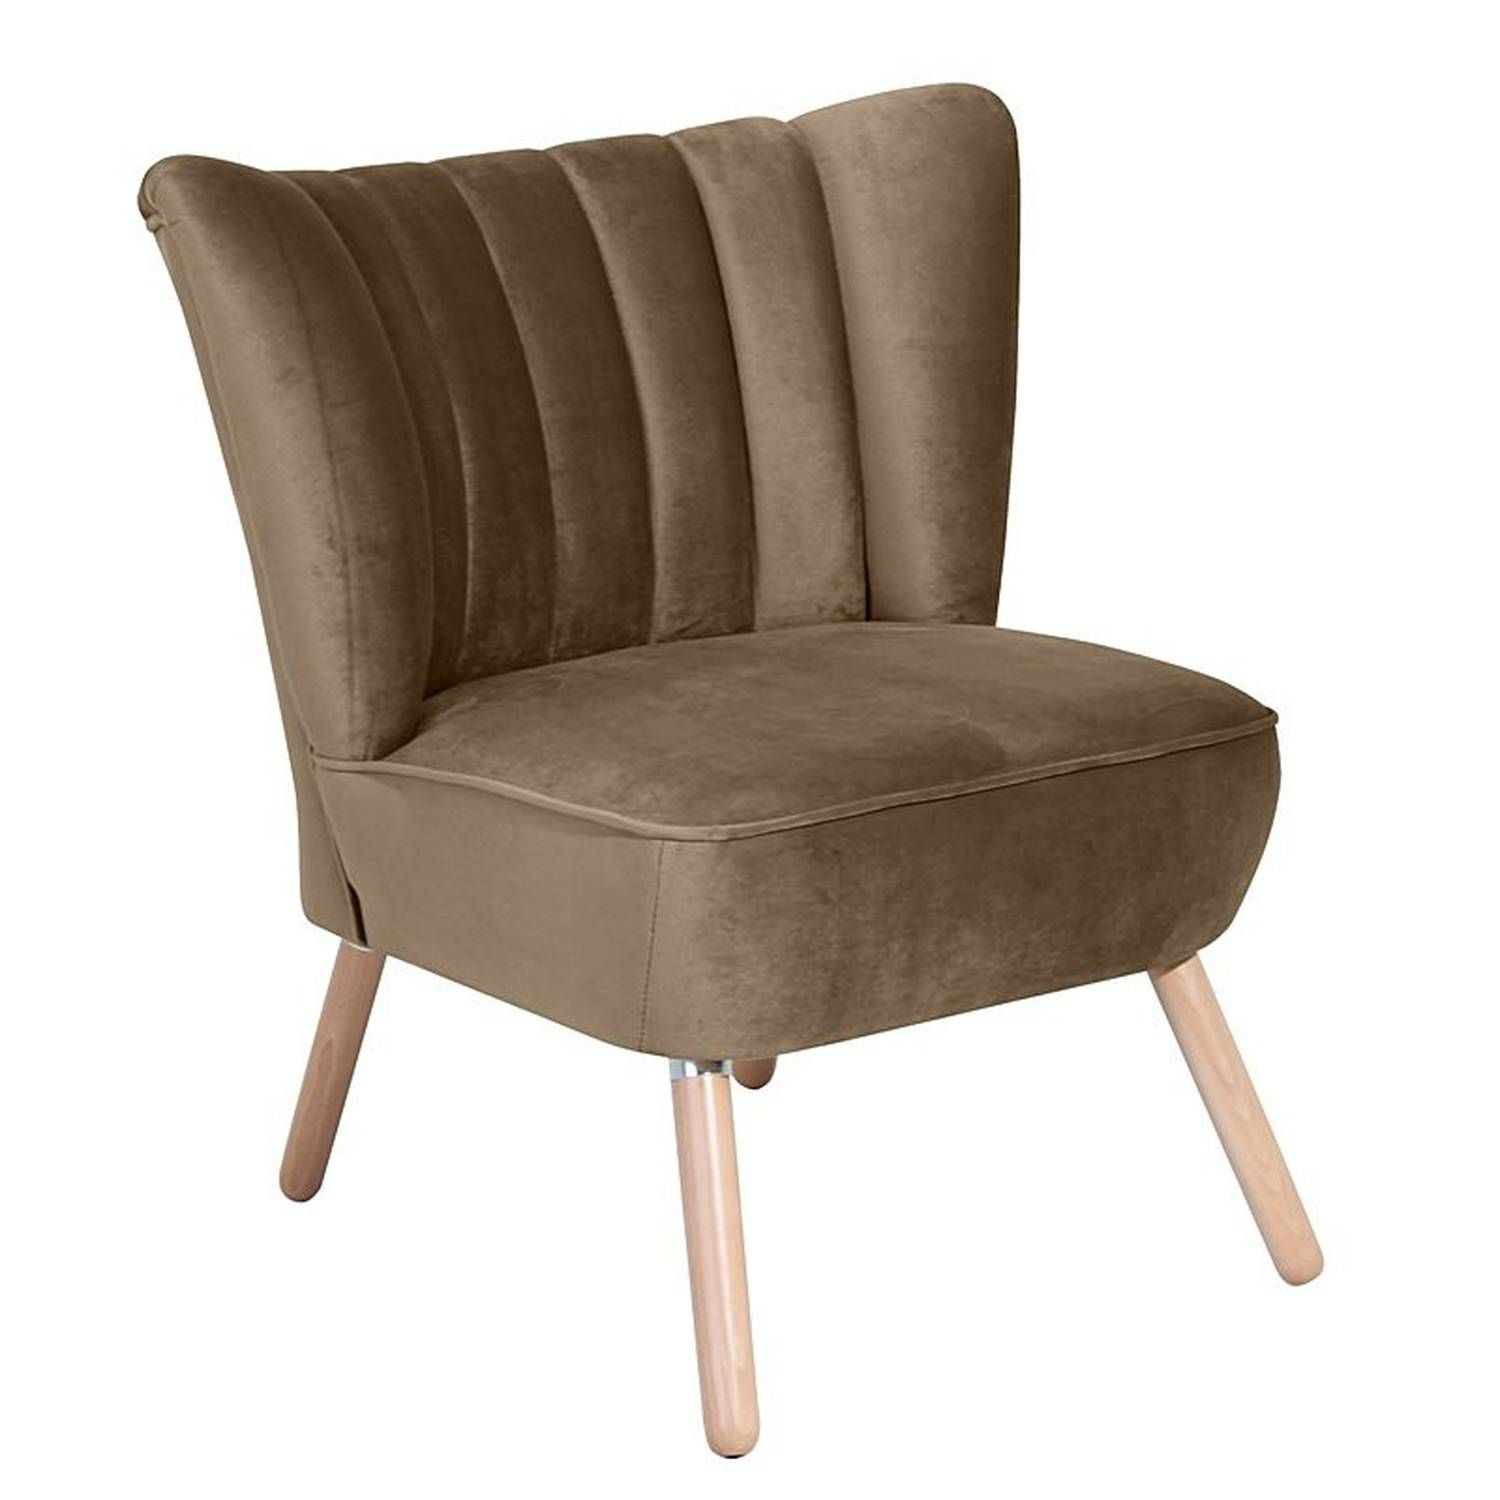 Sessel Alessandro 23 Samtvelours Farbe Sahara Sitzhärte Fest B 70cm T 66cm H 80cm Sessel Stressles Upholstered Furniture Furniture Living Room Accents